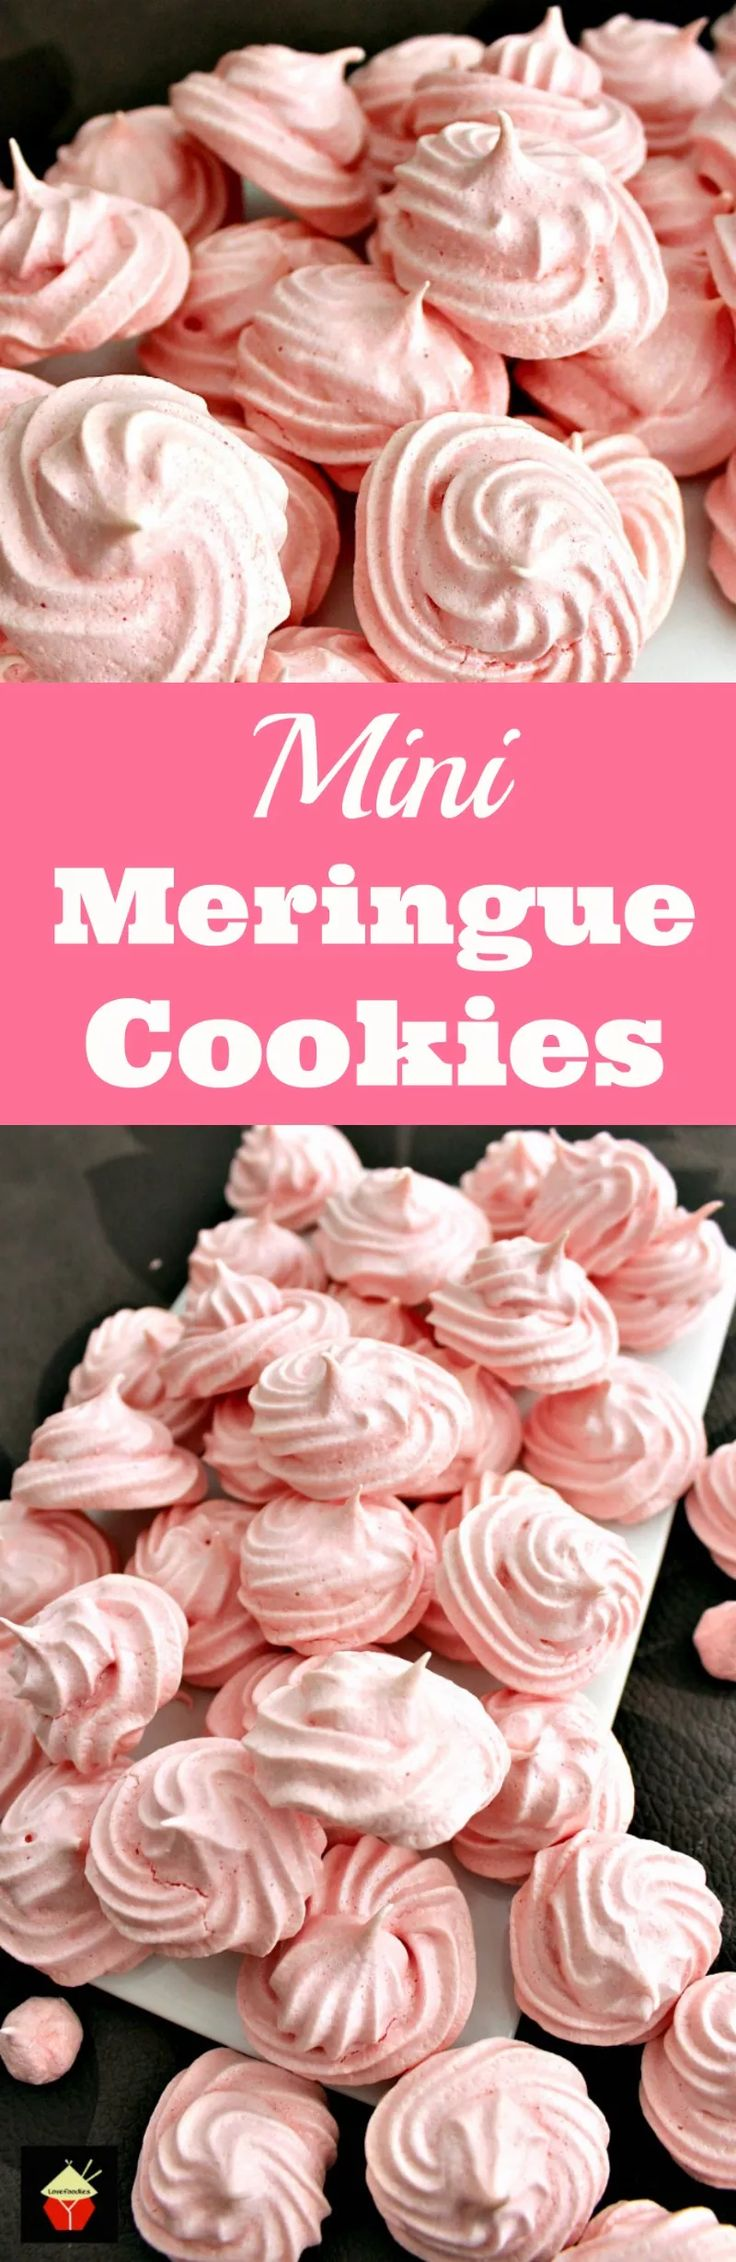 Mini Meringue Cookies! These are a wonderful sweet treat made up of just 2 ingredients. Incredibly easy to make and are perfect for adding to desserts or eating just as they are. Christmas Collection | Lovefoodies.com